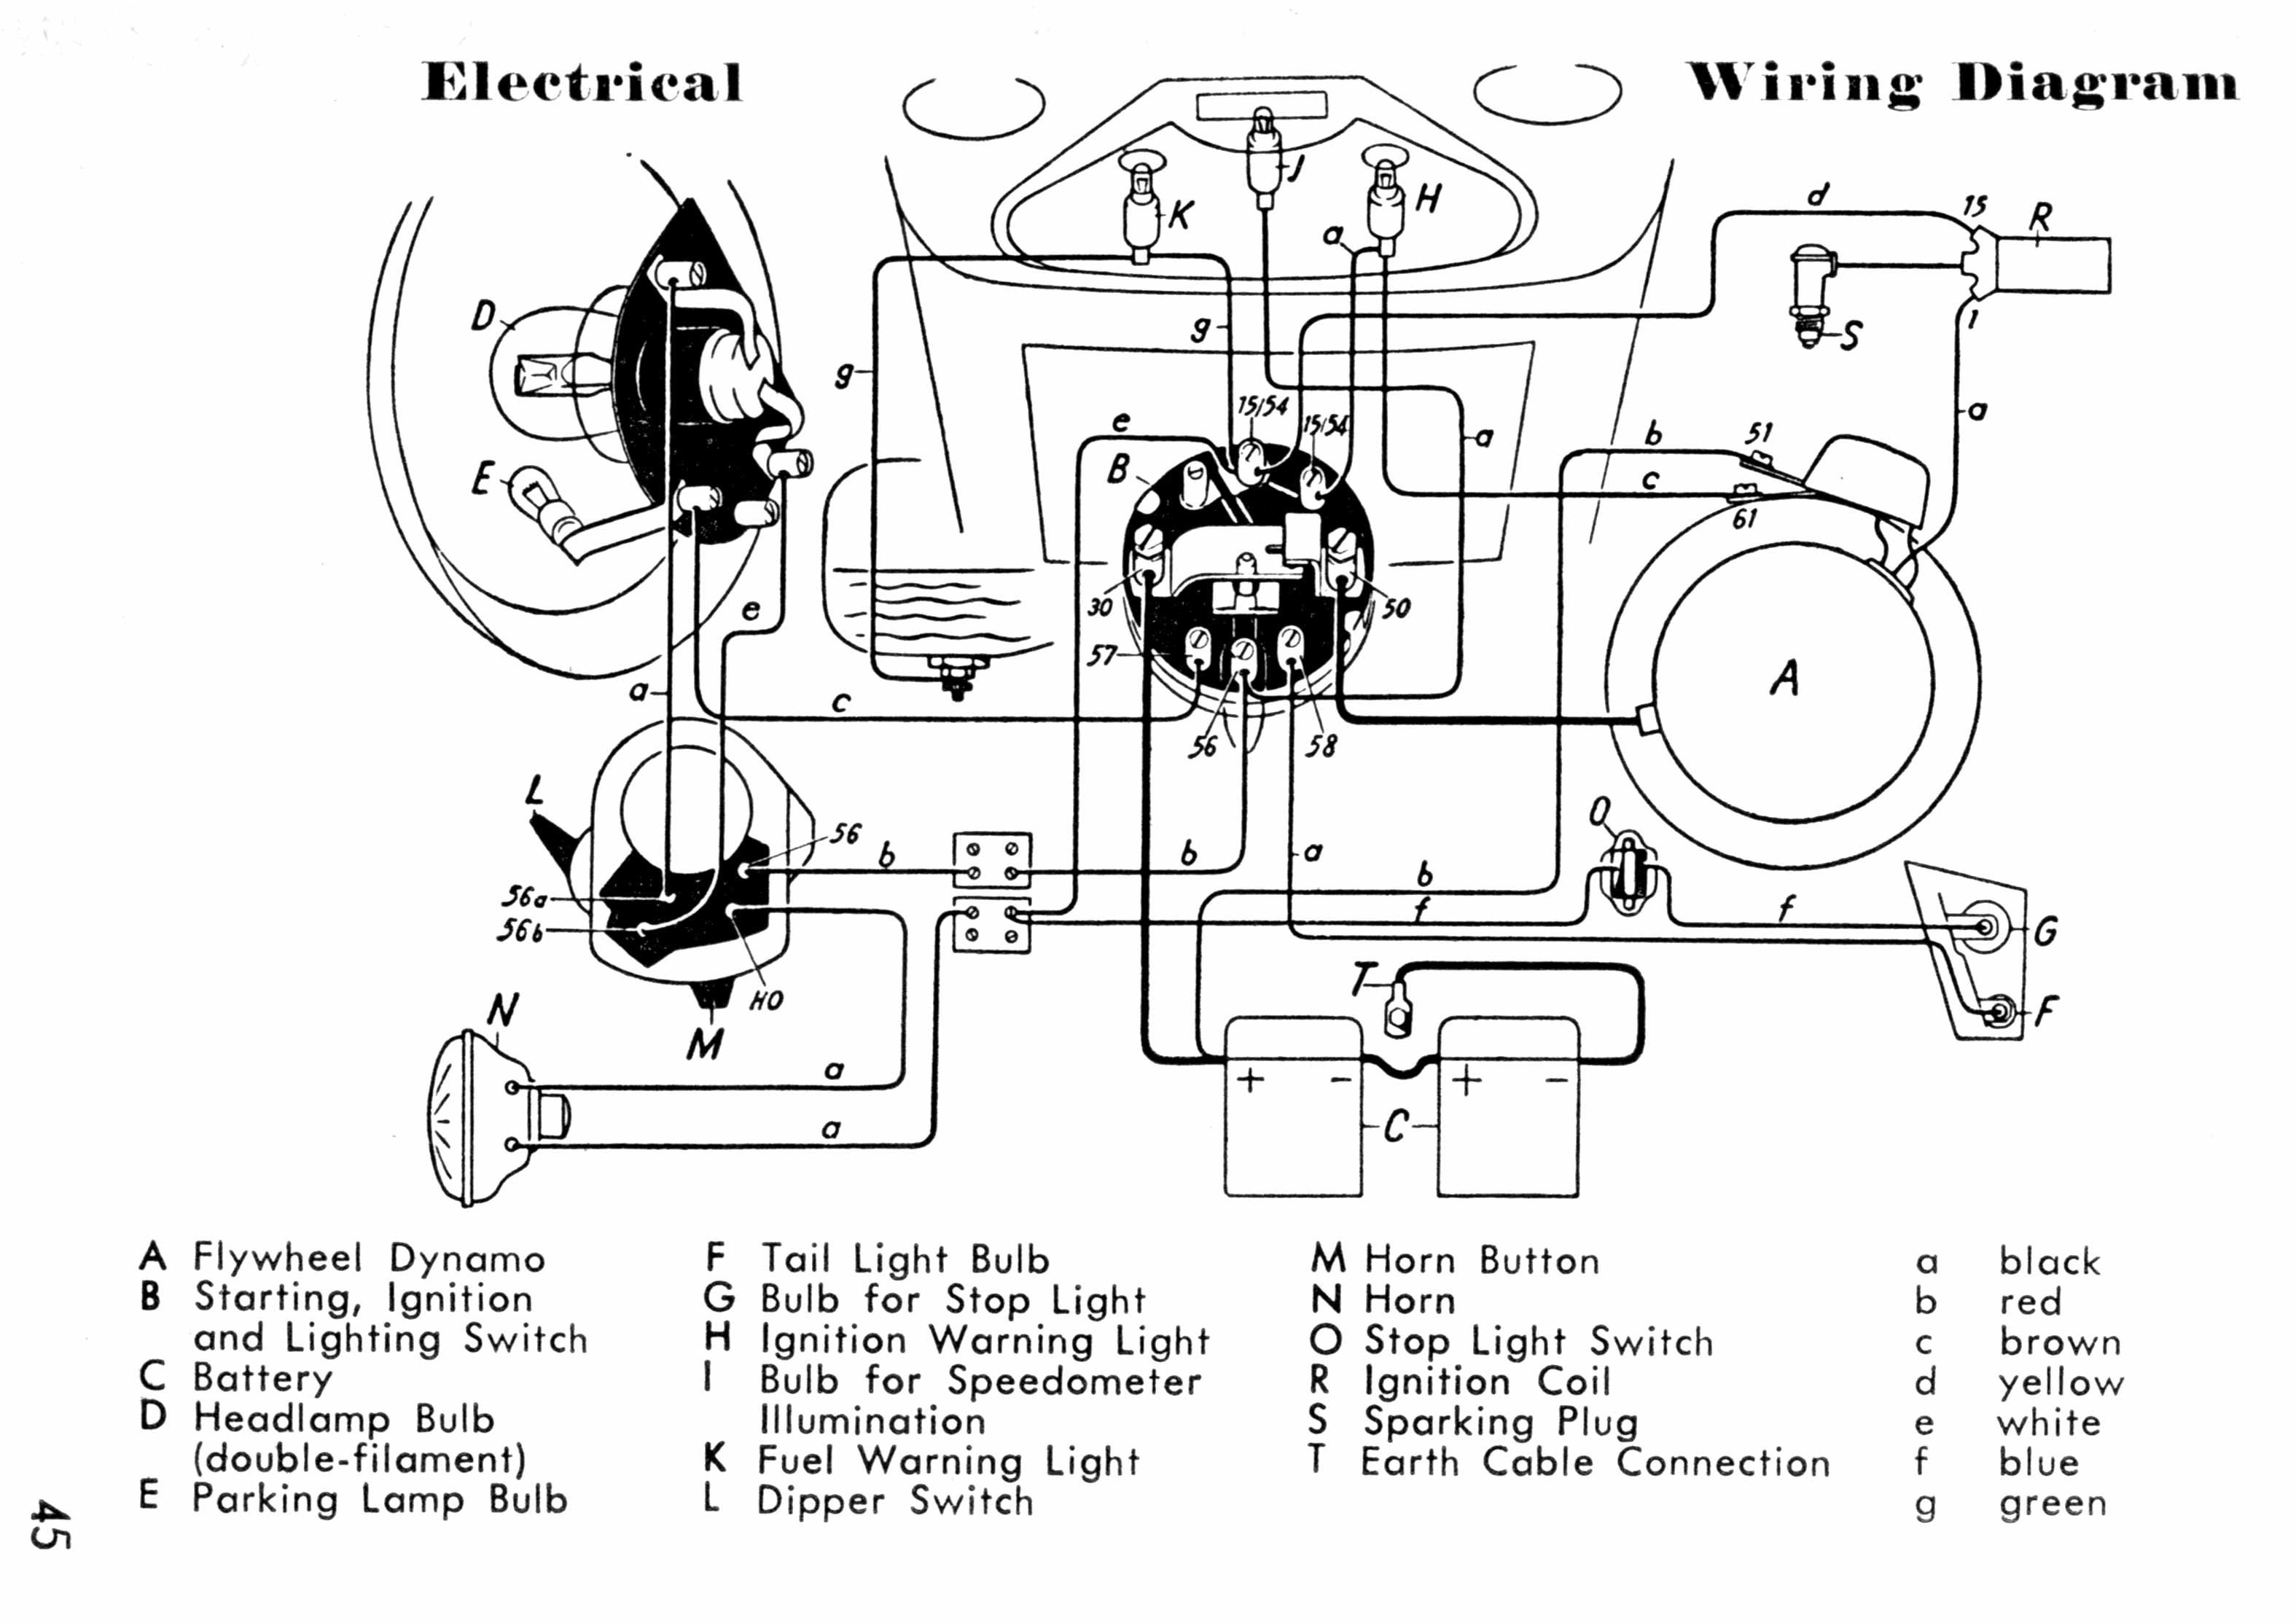 nsu_wiring_diagram electric choke wiring diagram gm electric choke wiring \u2022 free gy6 electric choke wiring diagram at gsmportal.co